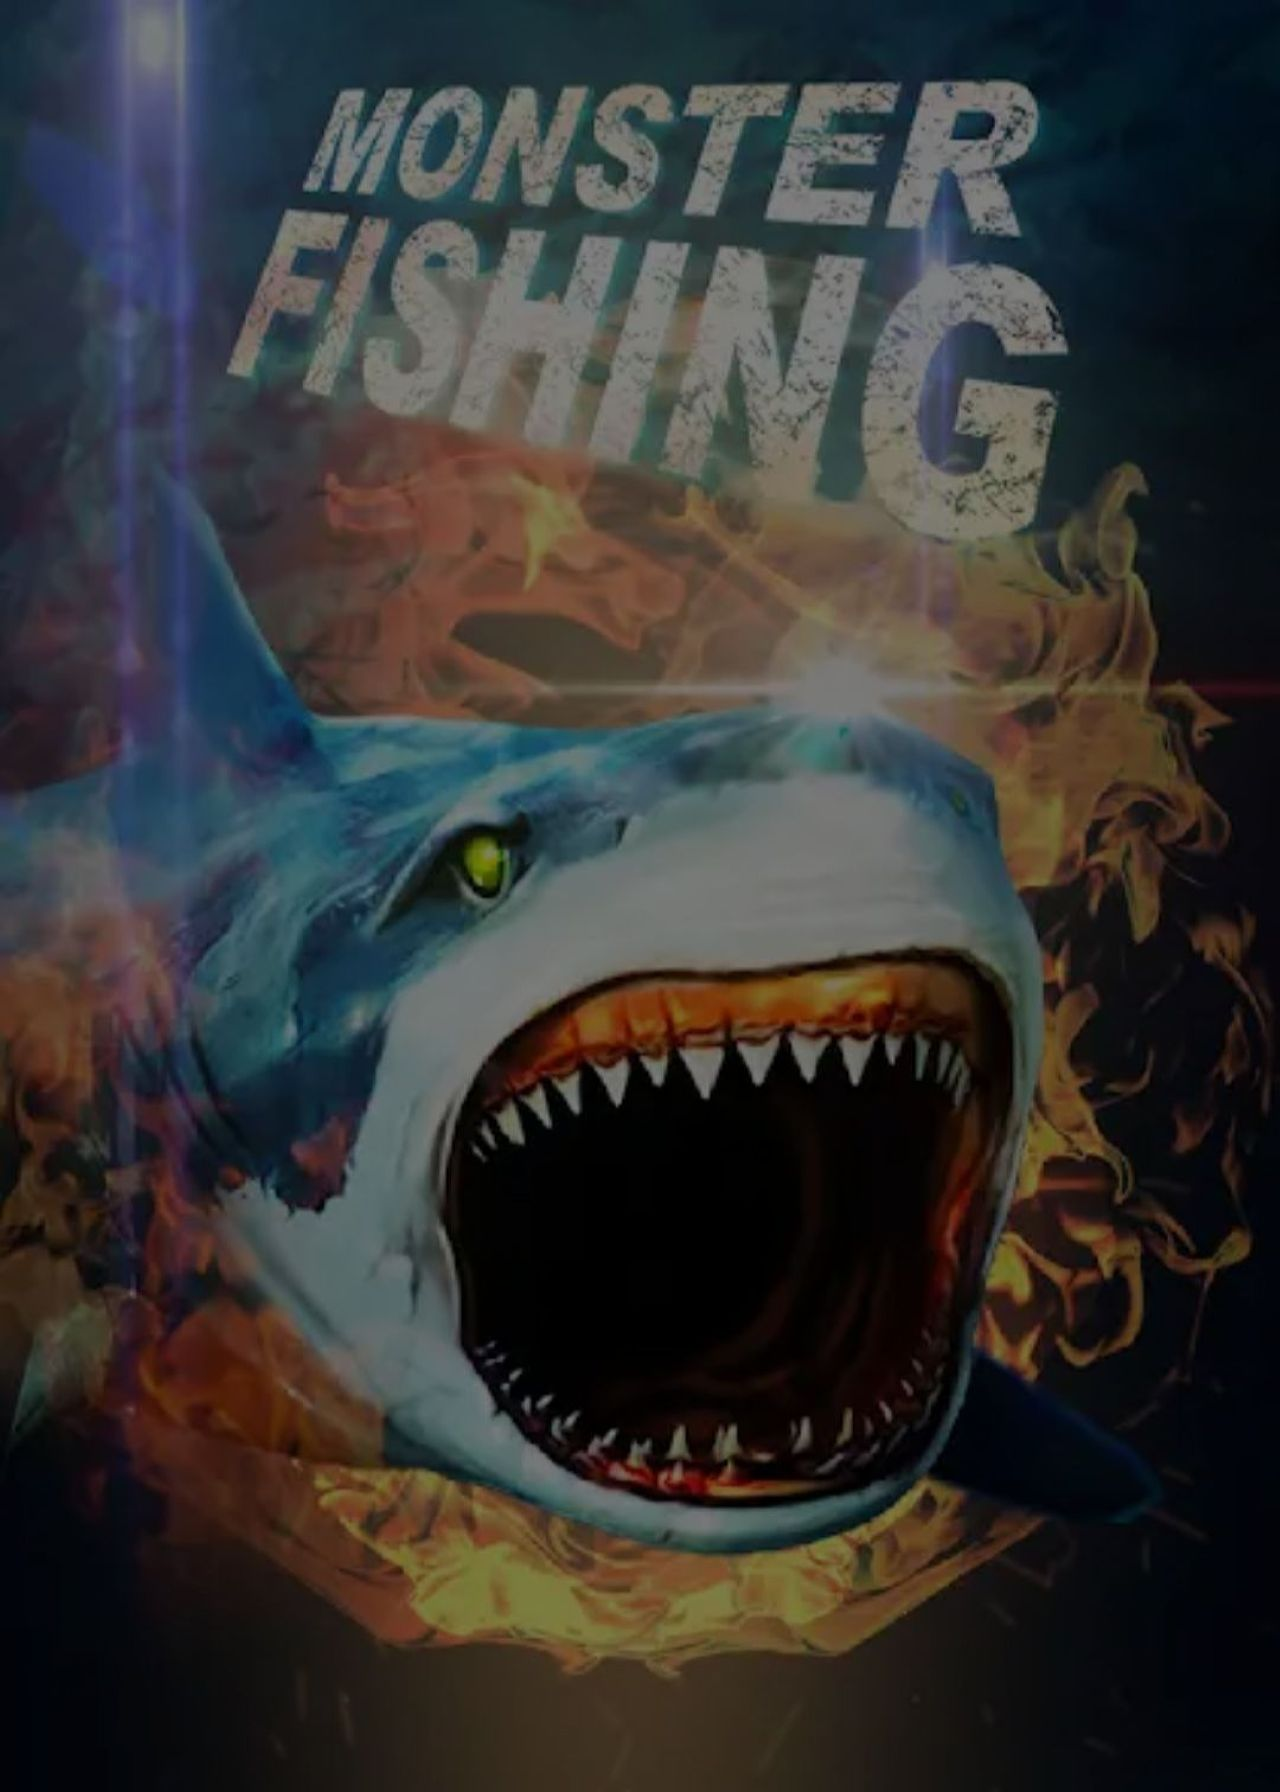 Monster Fishing 2018 Hack 2020 - Online Cheat For Unlimited Resources